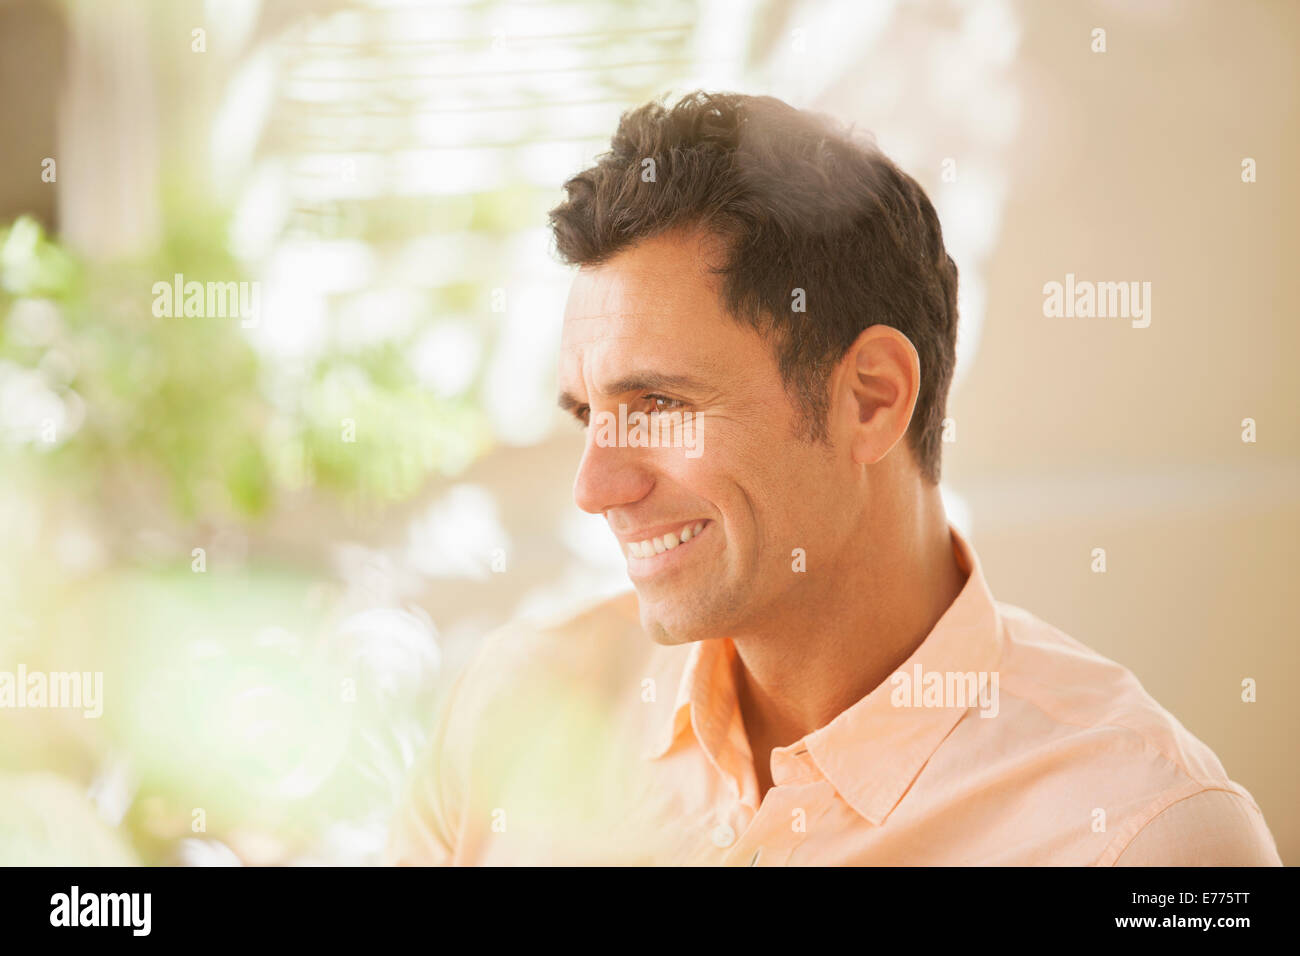 Man smiling indoors Photo Stock